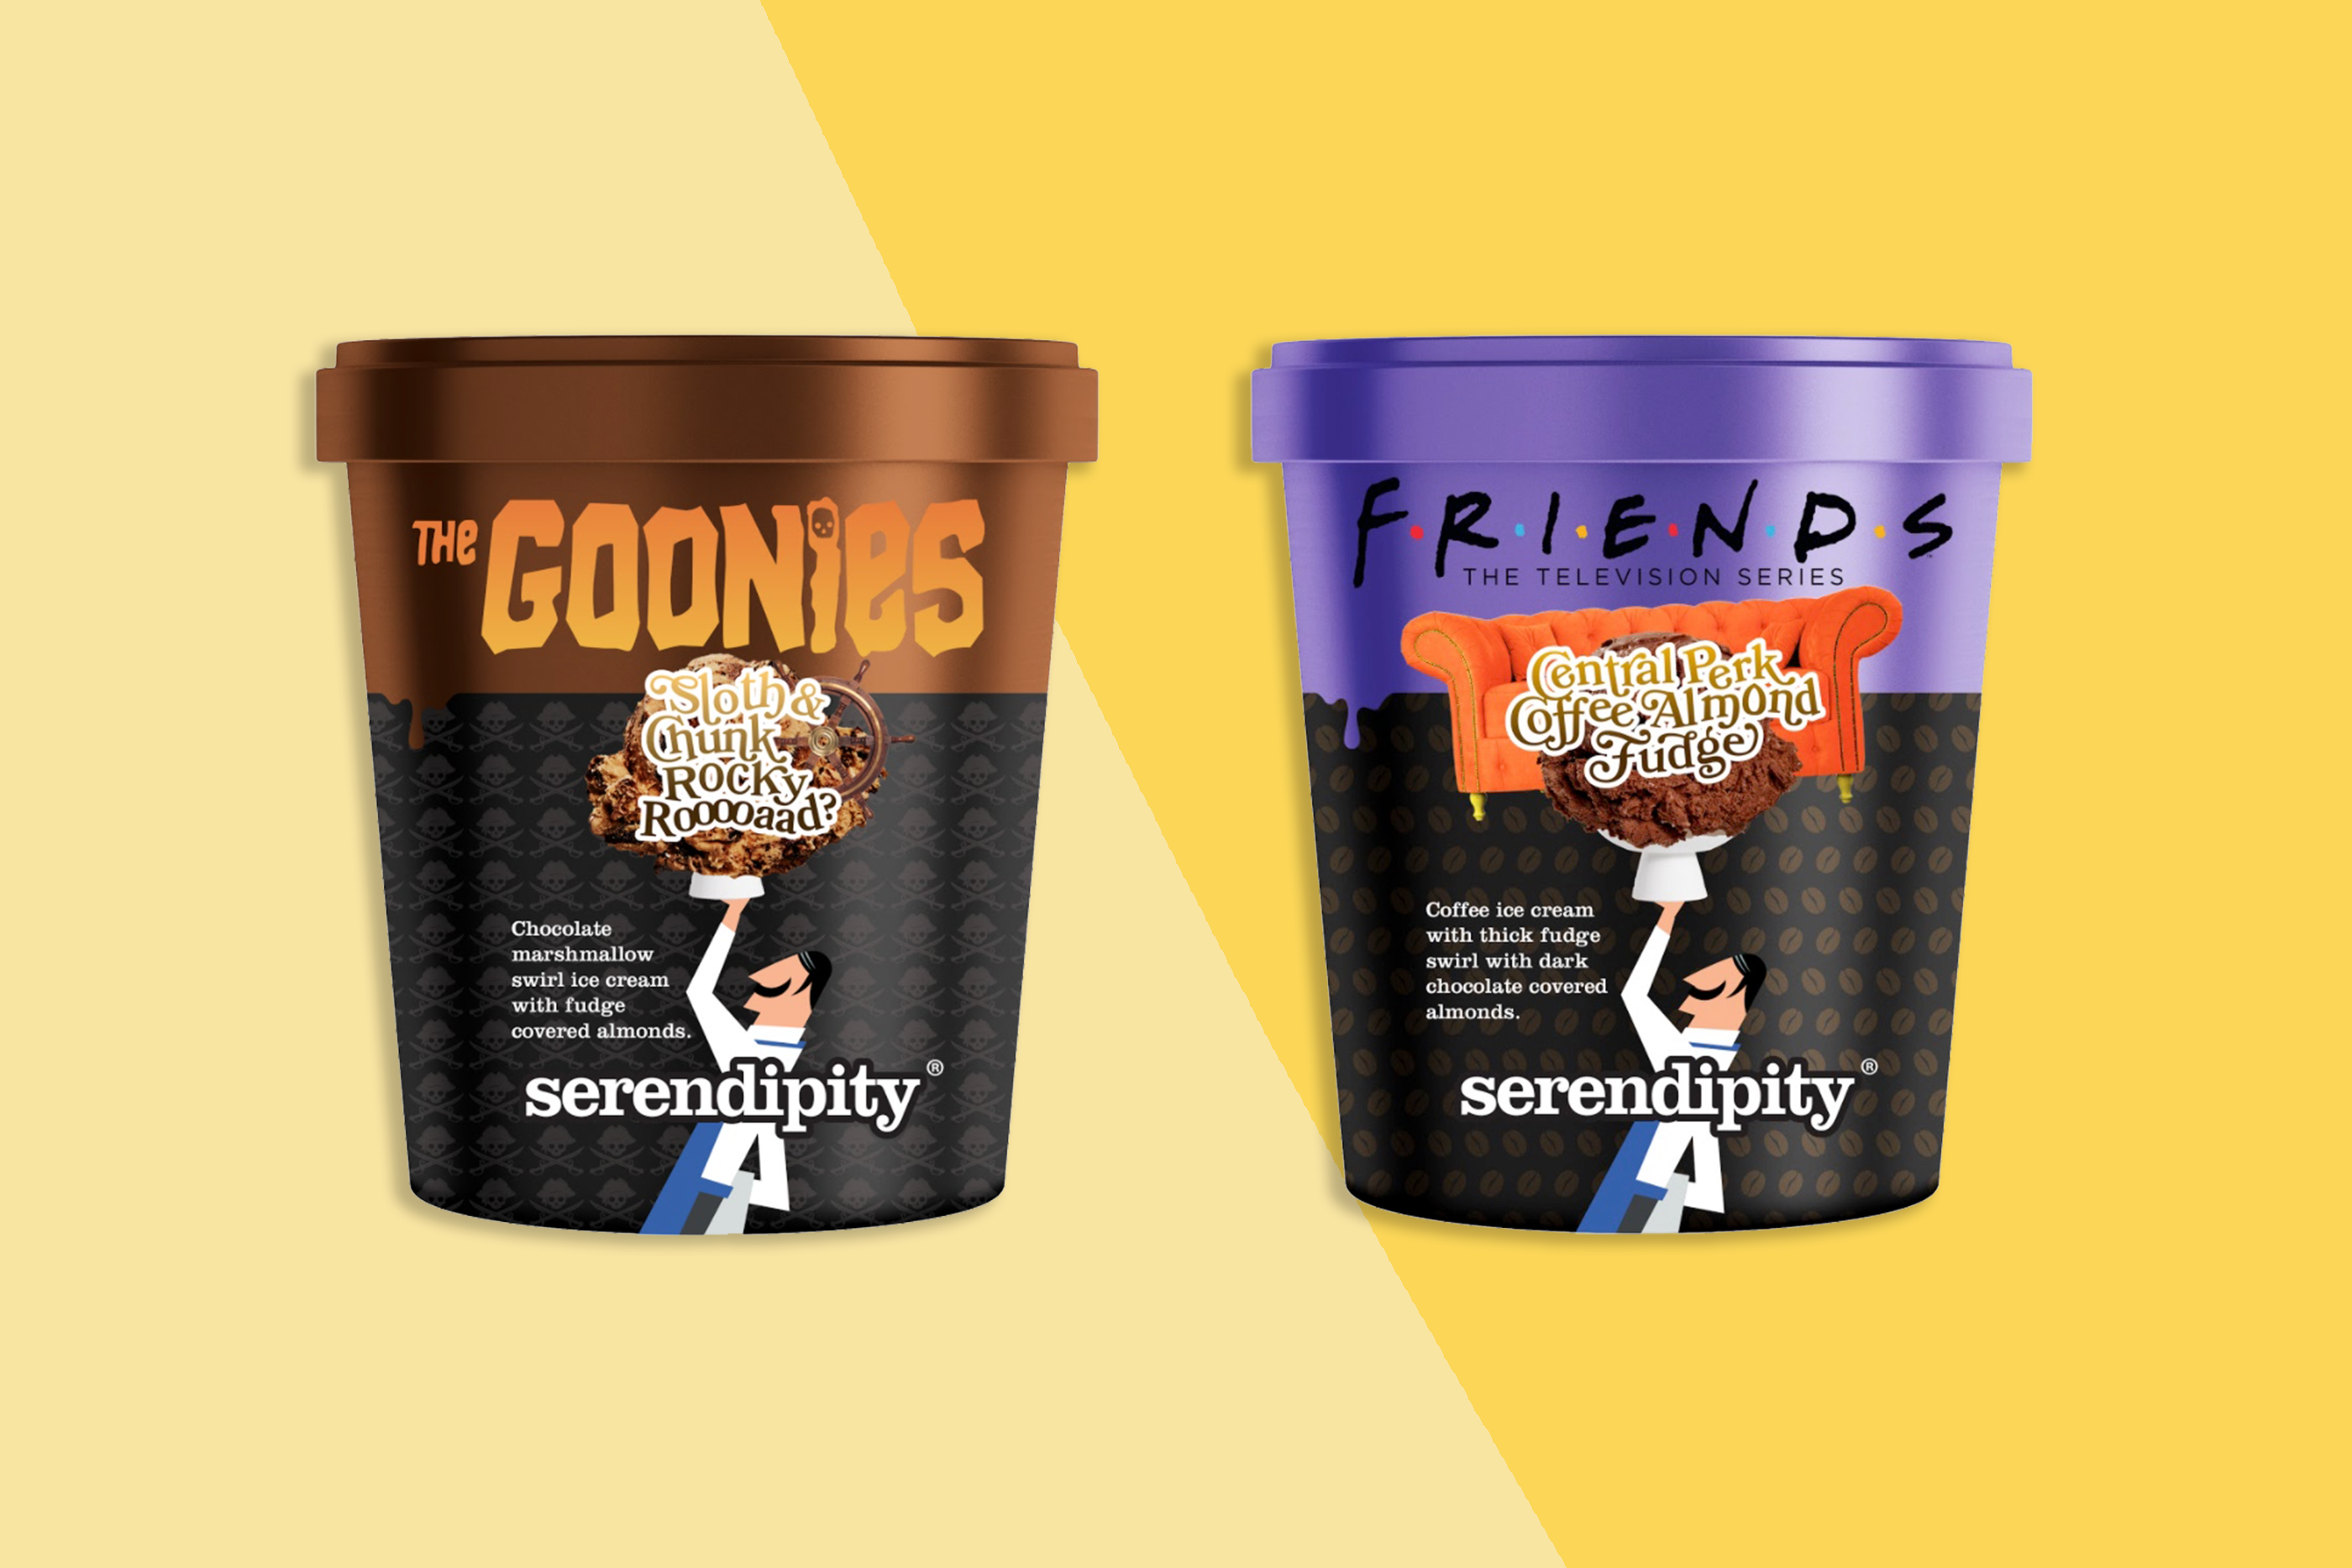 a carton of Goonies ice cream and Friends ice cream on a yellow background